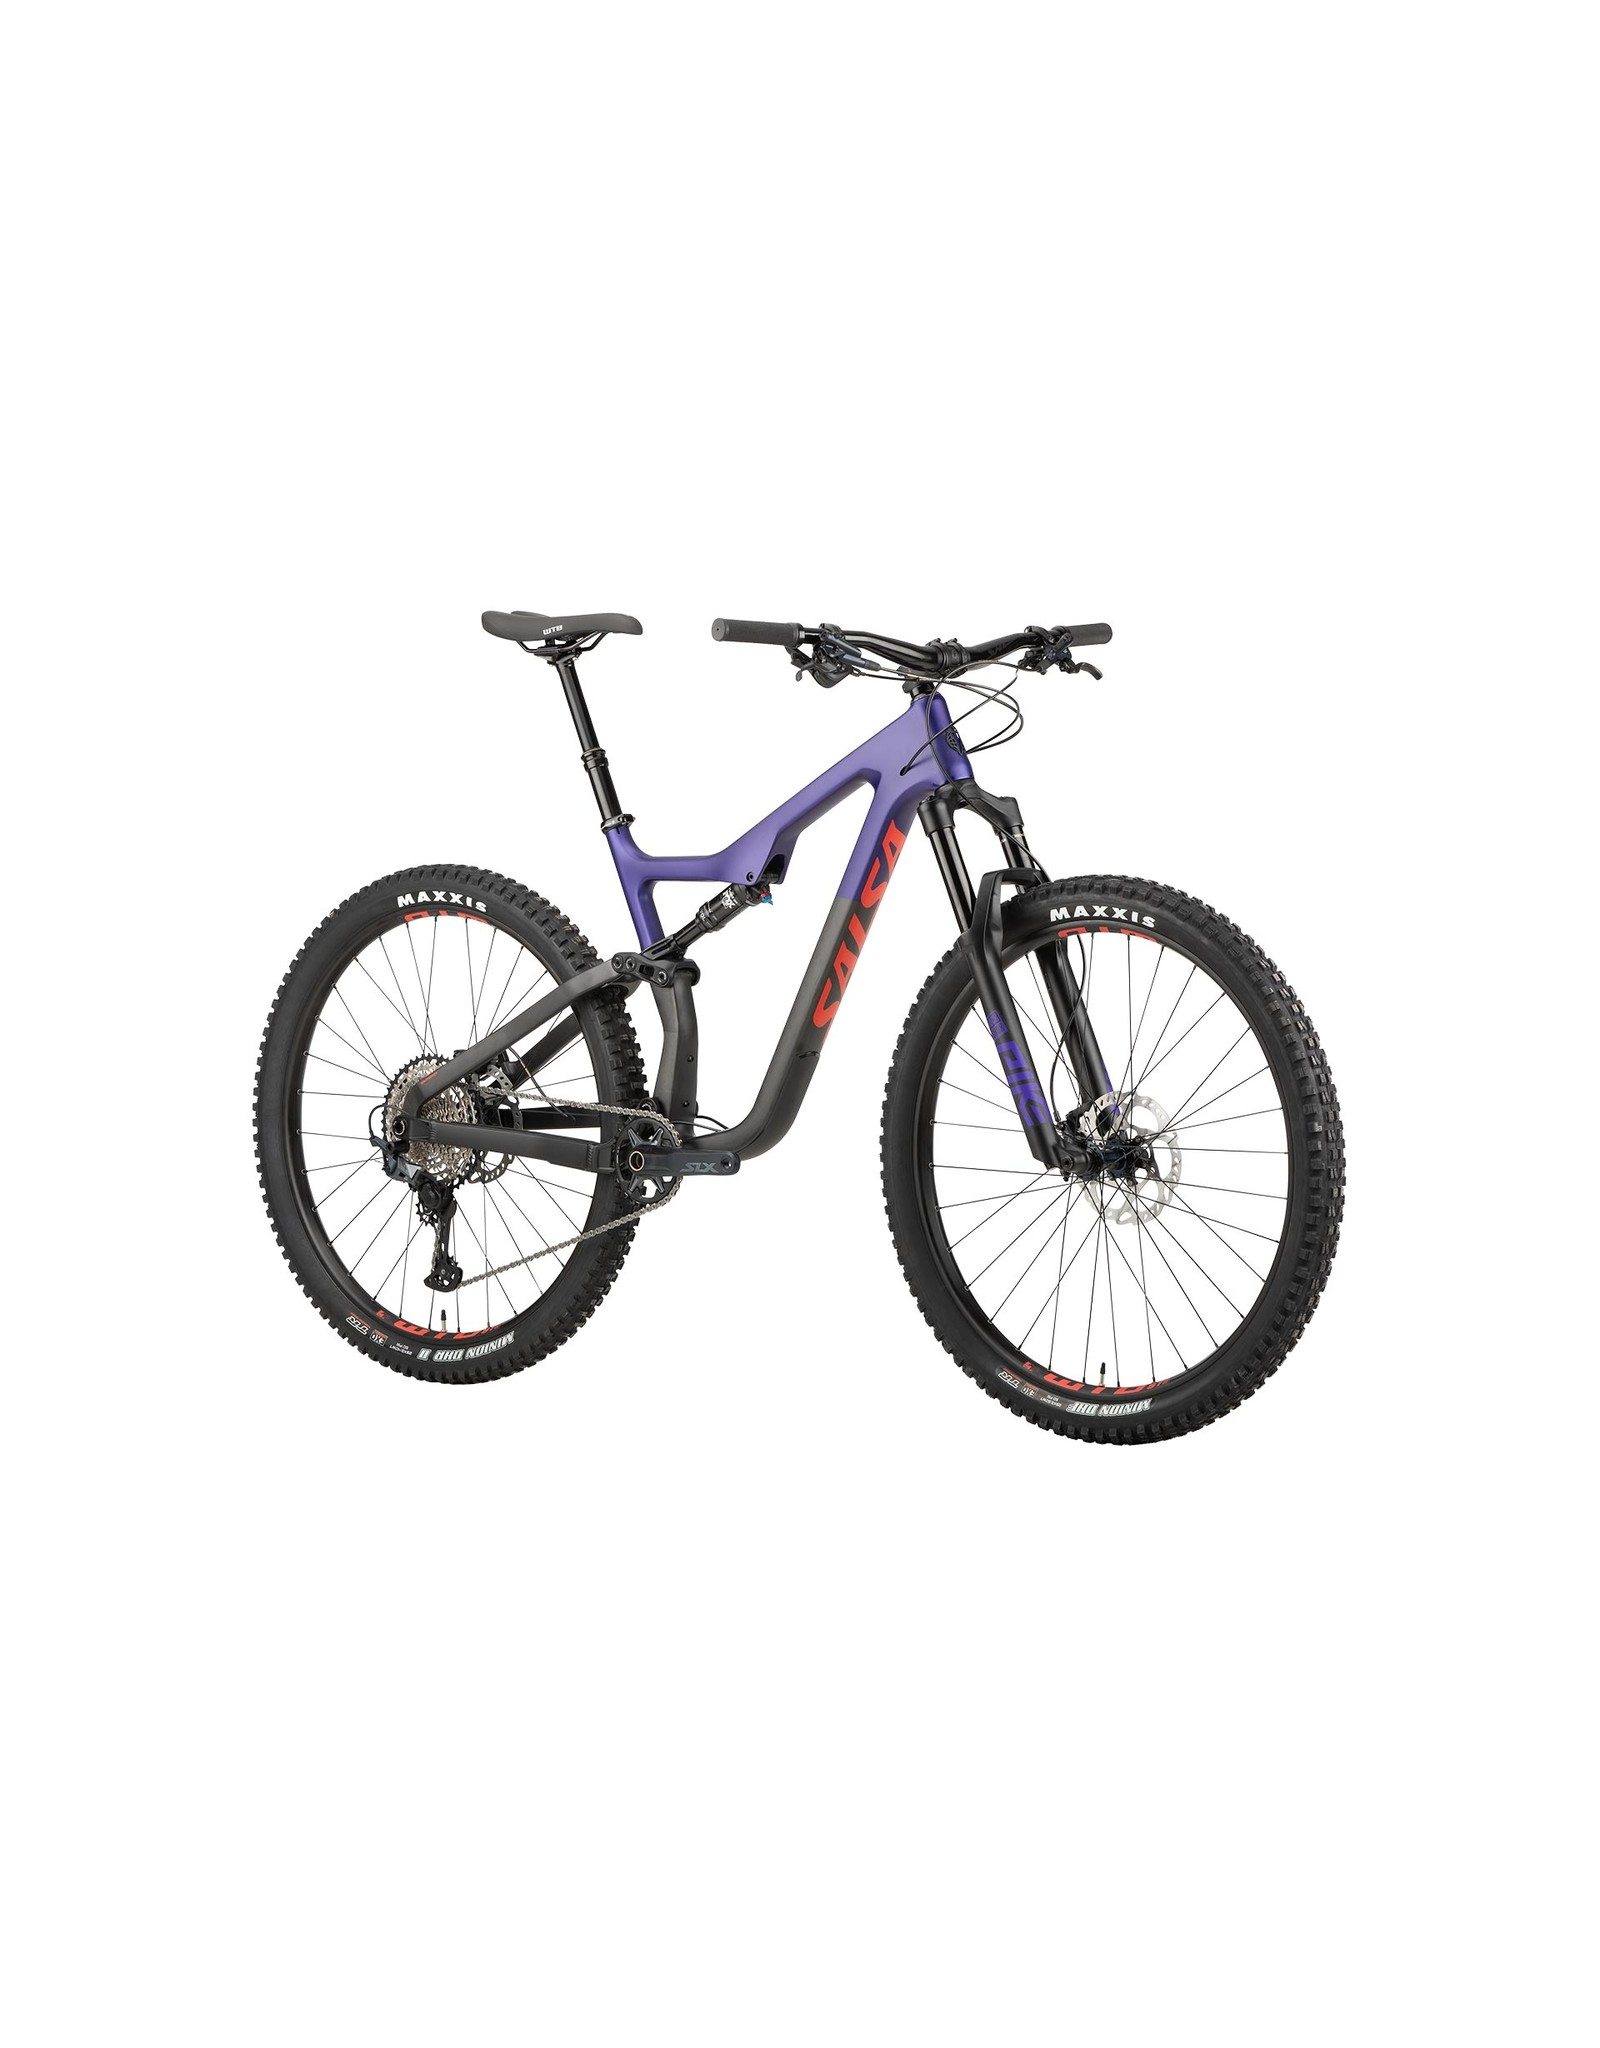 "Salsa Salsa Horsethief Carbon SLX Bike - 29"" Medium Carbon, Purple/Black,"